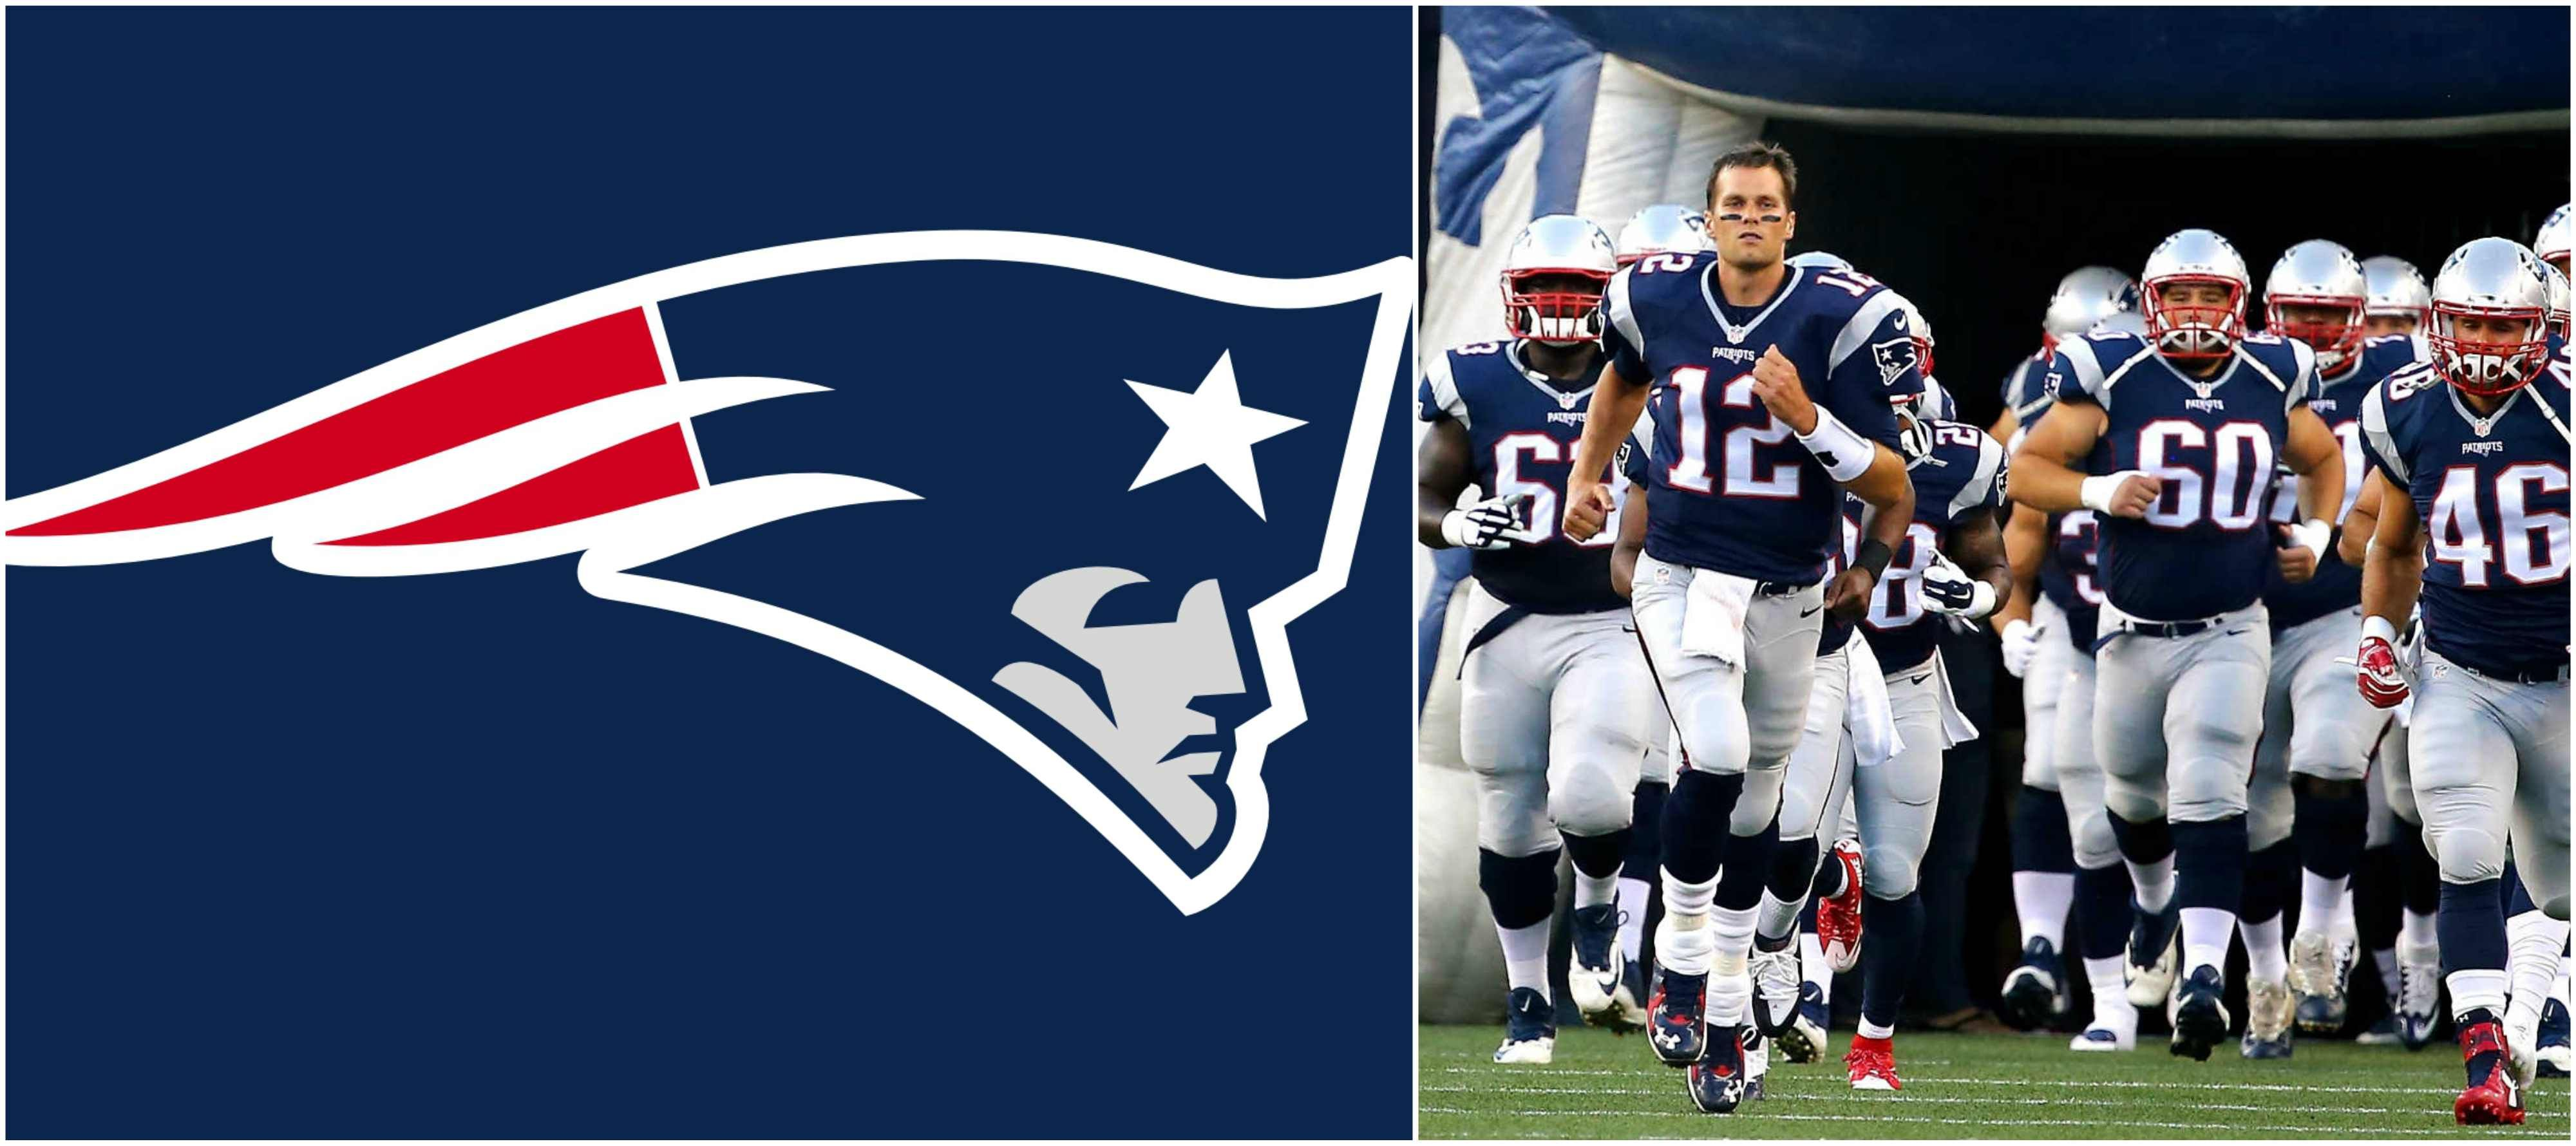 Watch Patriots Football Game Http Patriotsgametoday Net Online Streaming On Ipad Iphone New England Patriots Game Patriots Football Game Patriots Football